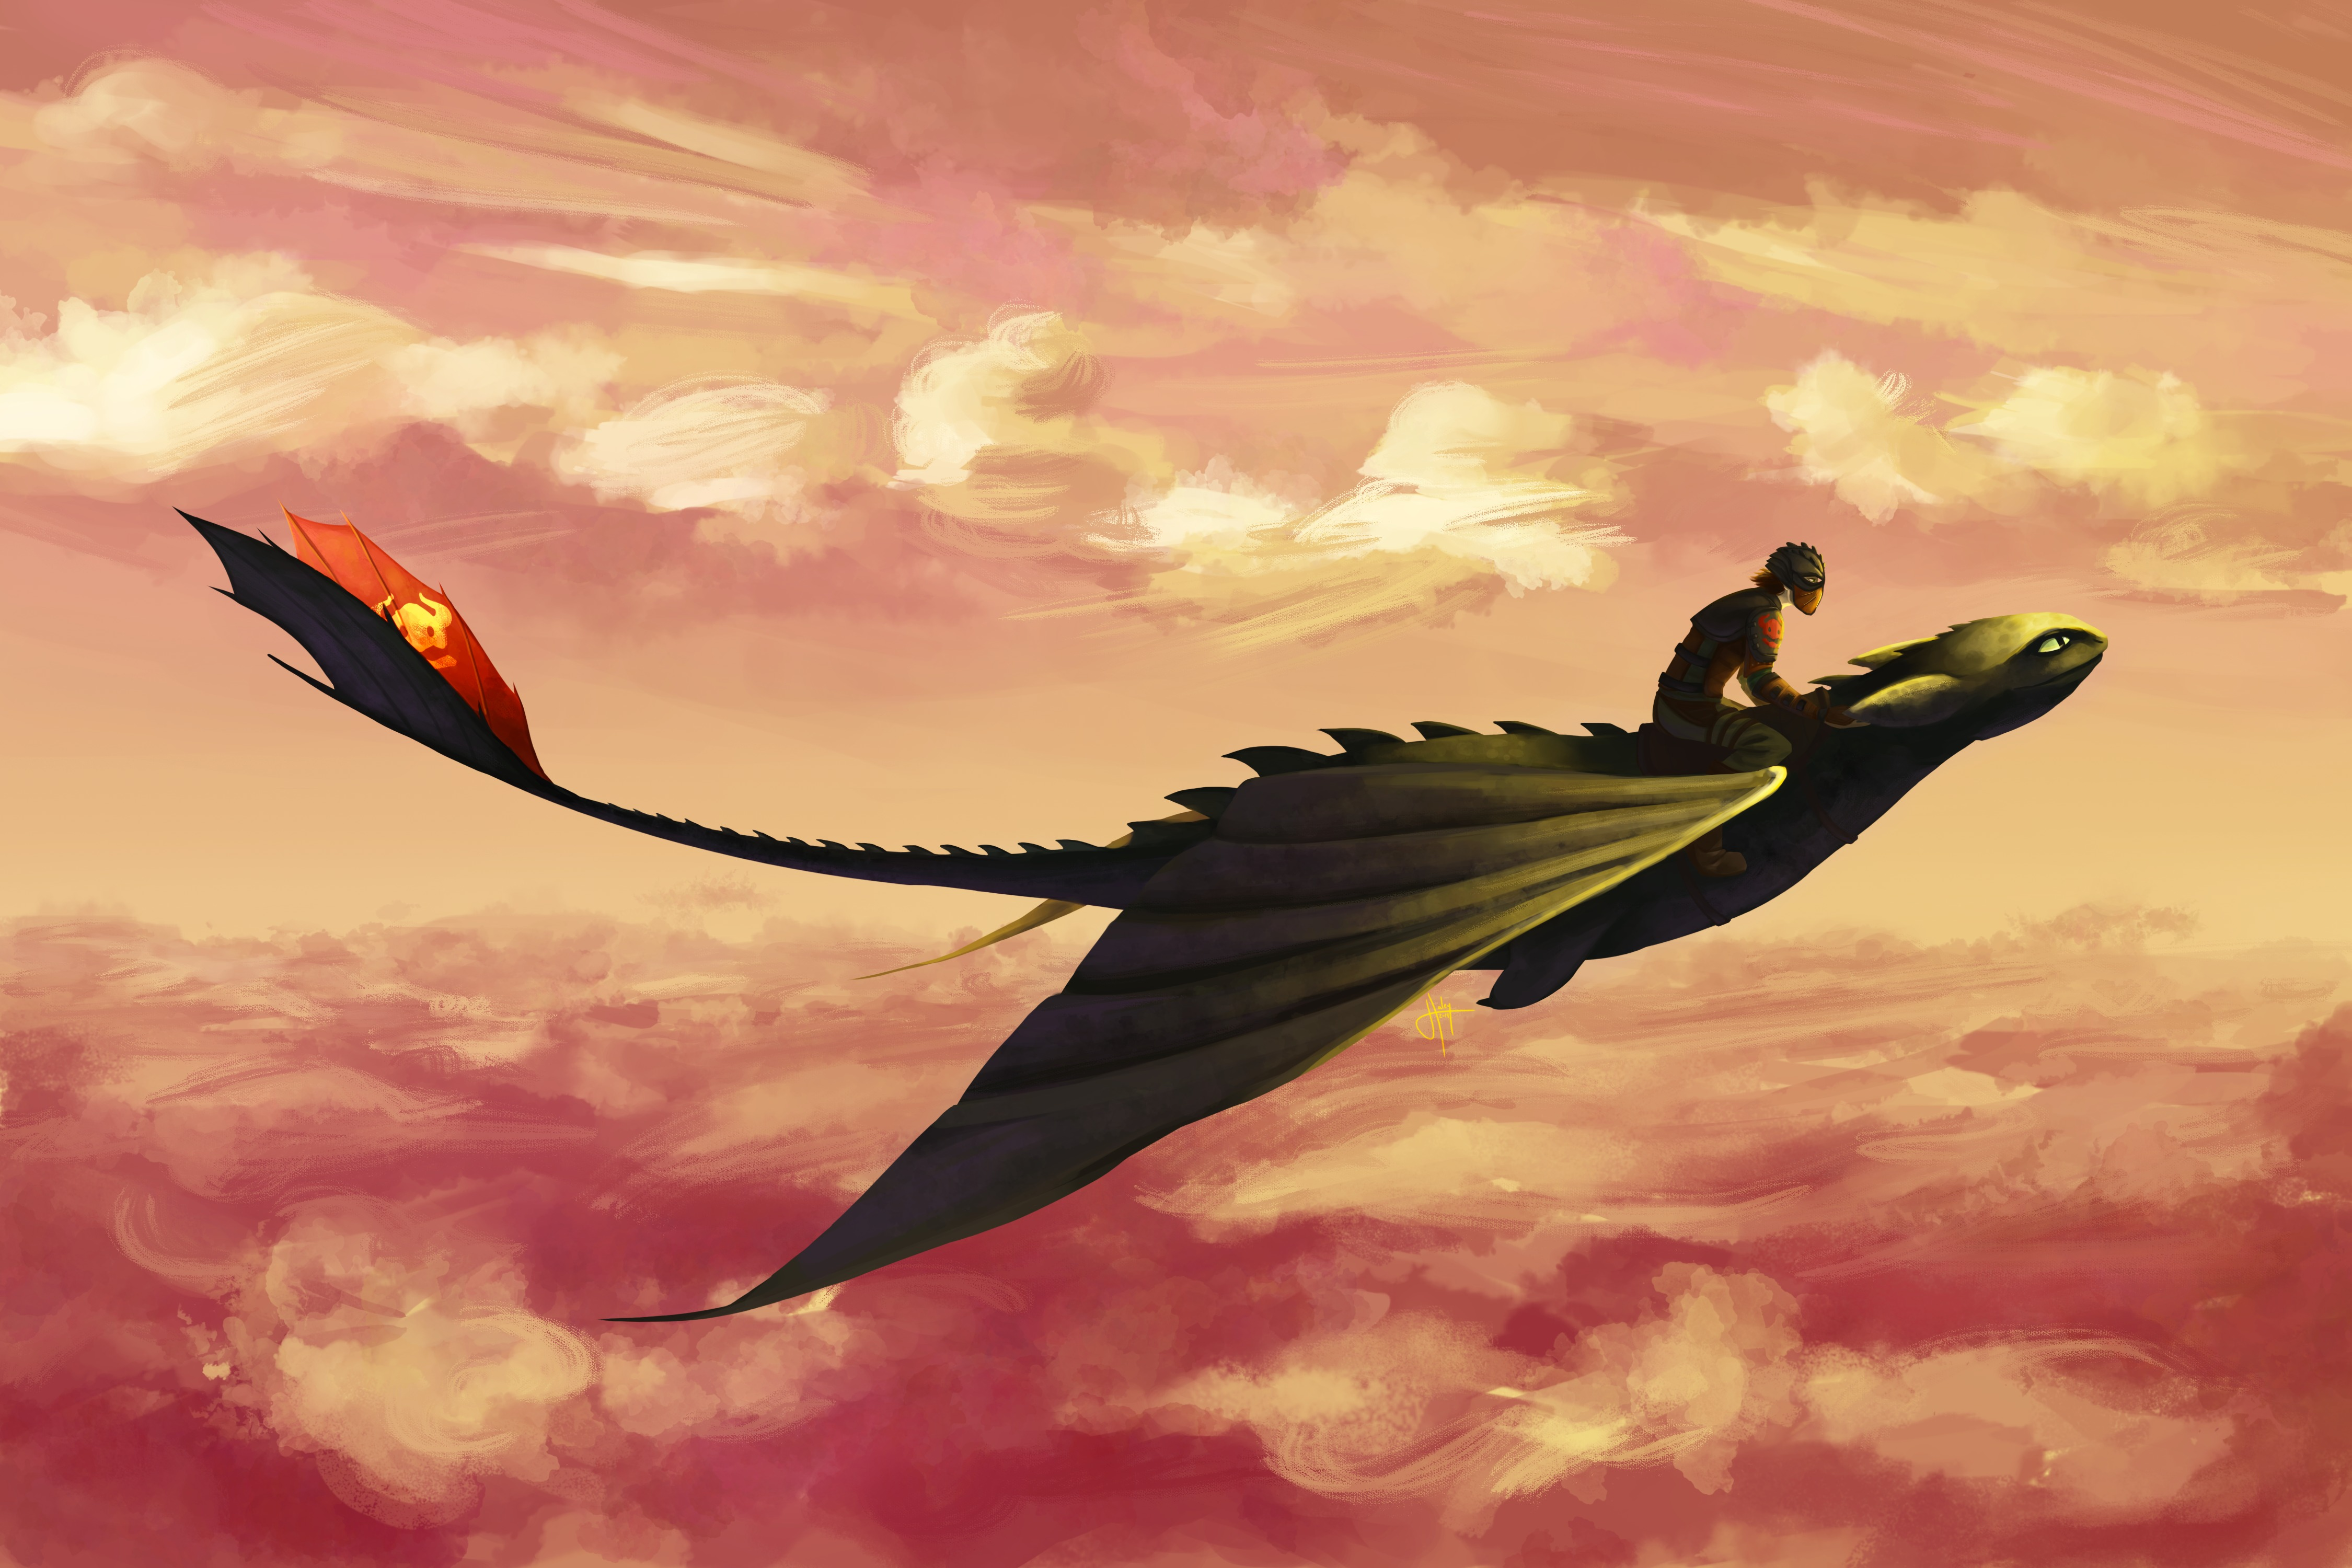 Hiccup And Toothless Flying Wallpaper Hd Movies 4k Wallpapers Images Photos And Background